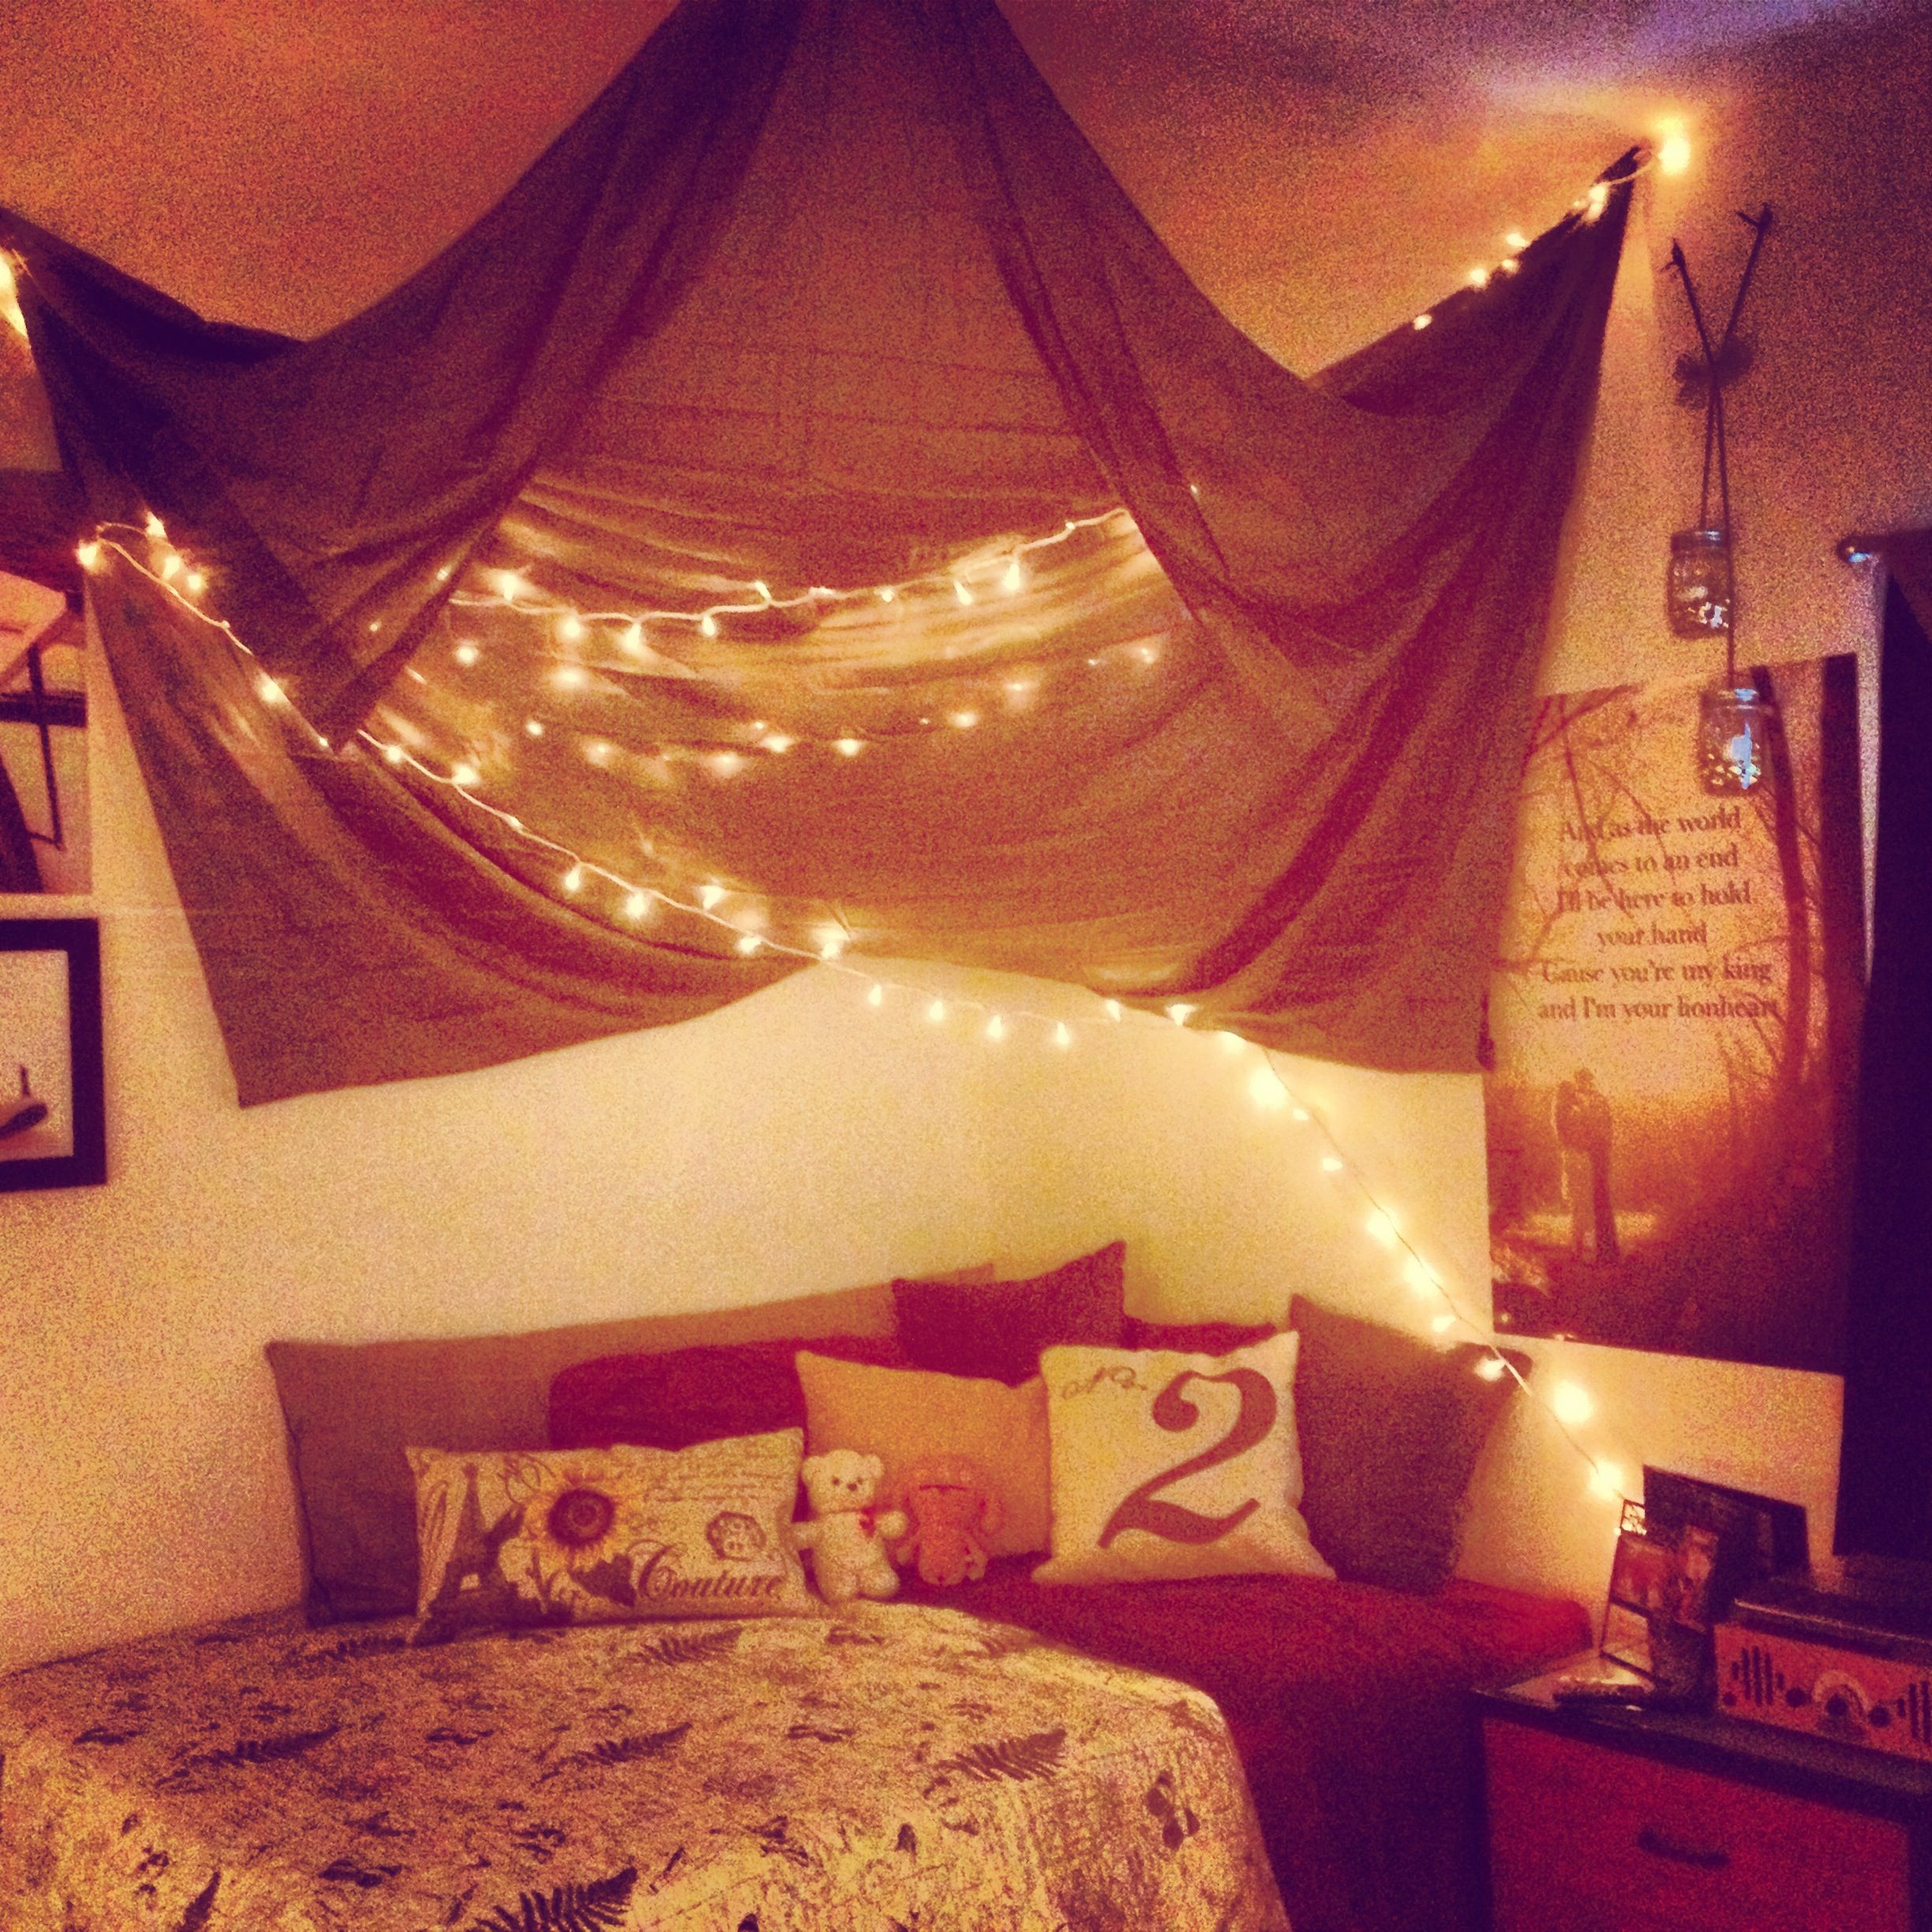 Ordinaire Hipster Bedroom Decorations/ Those Lights Are So Pretty!